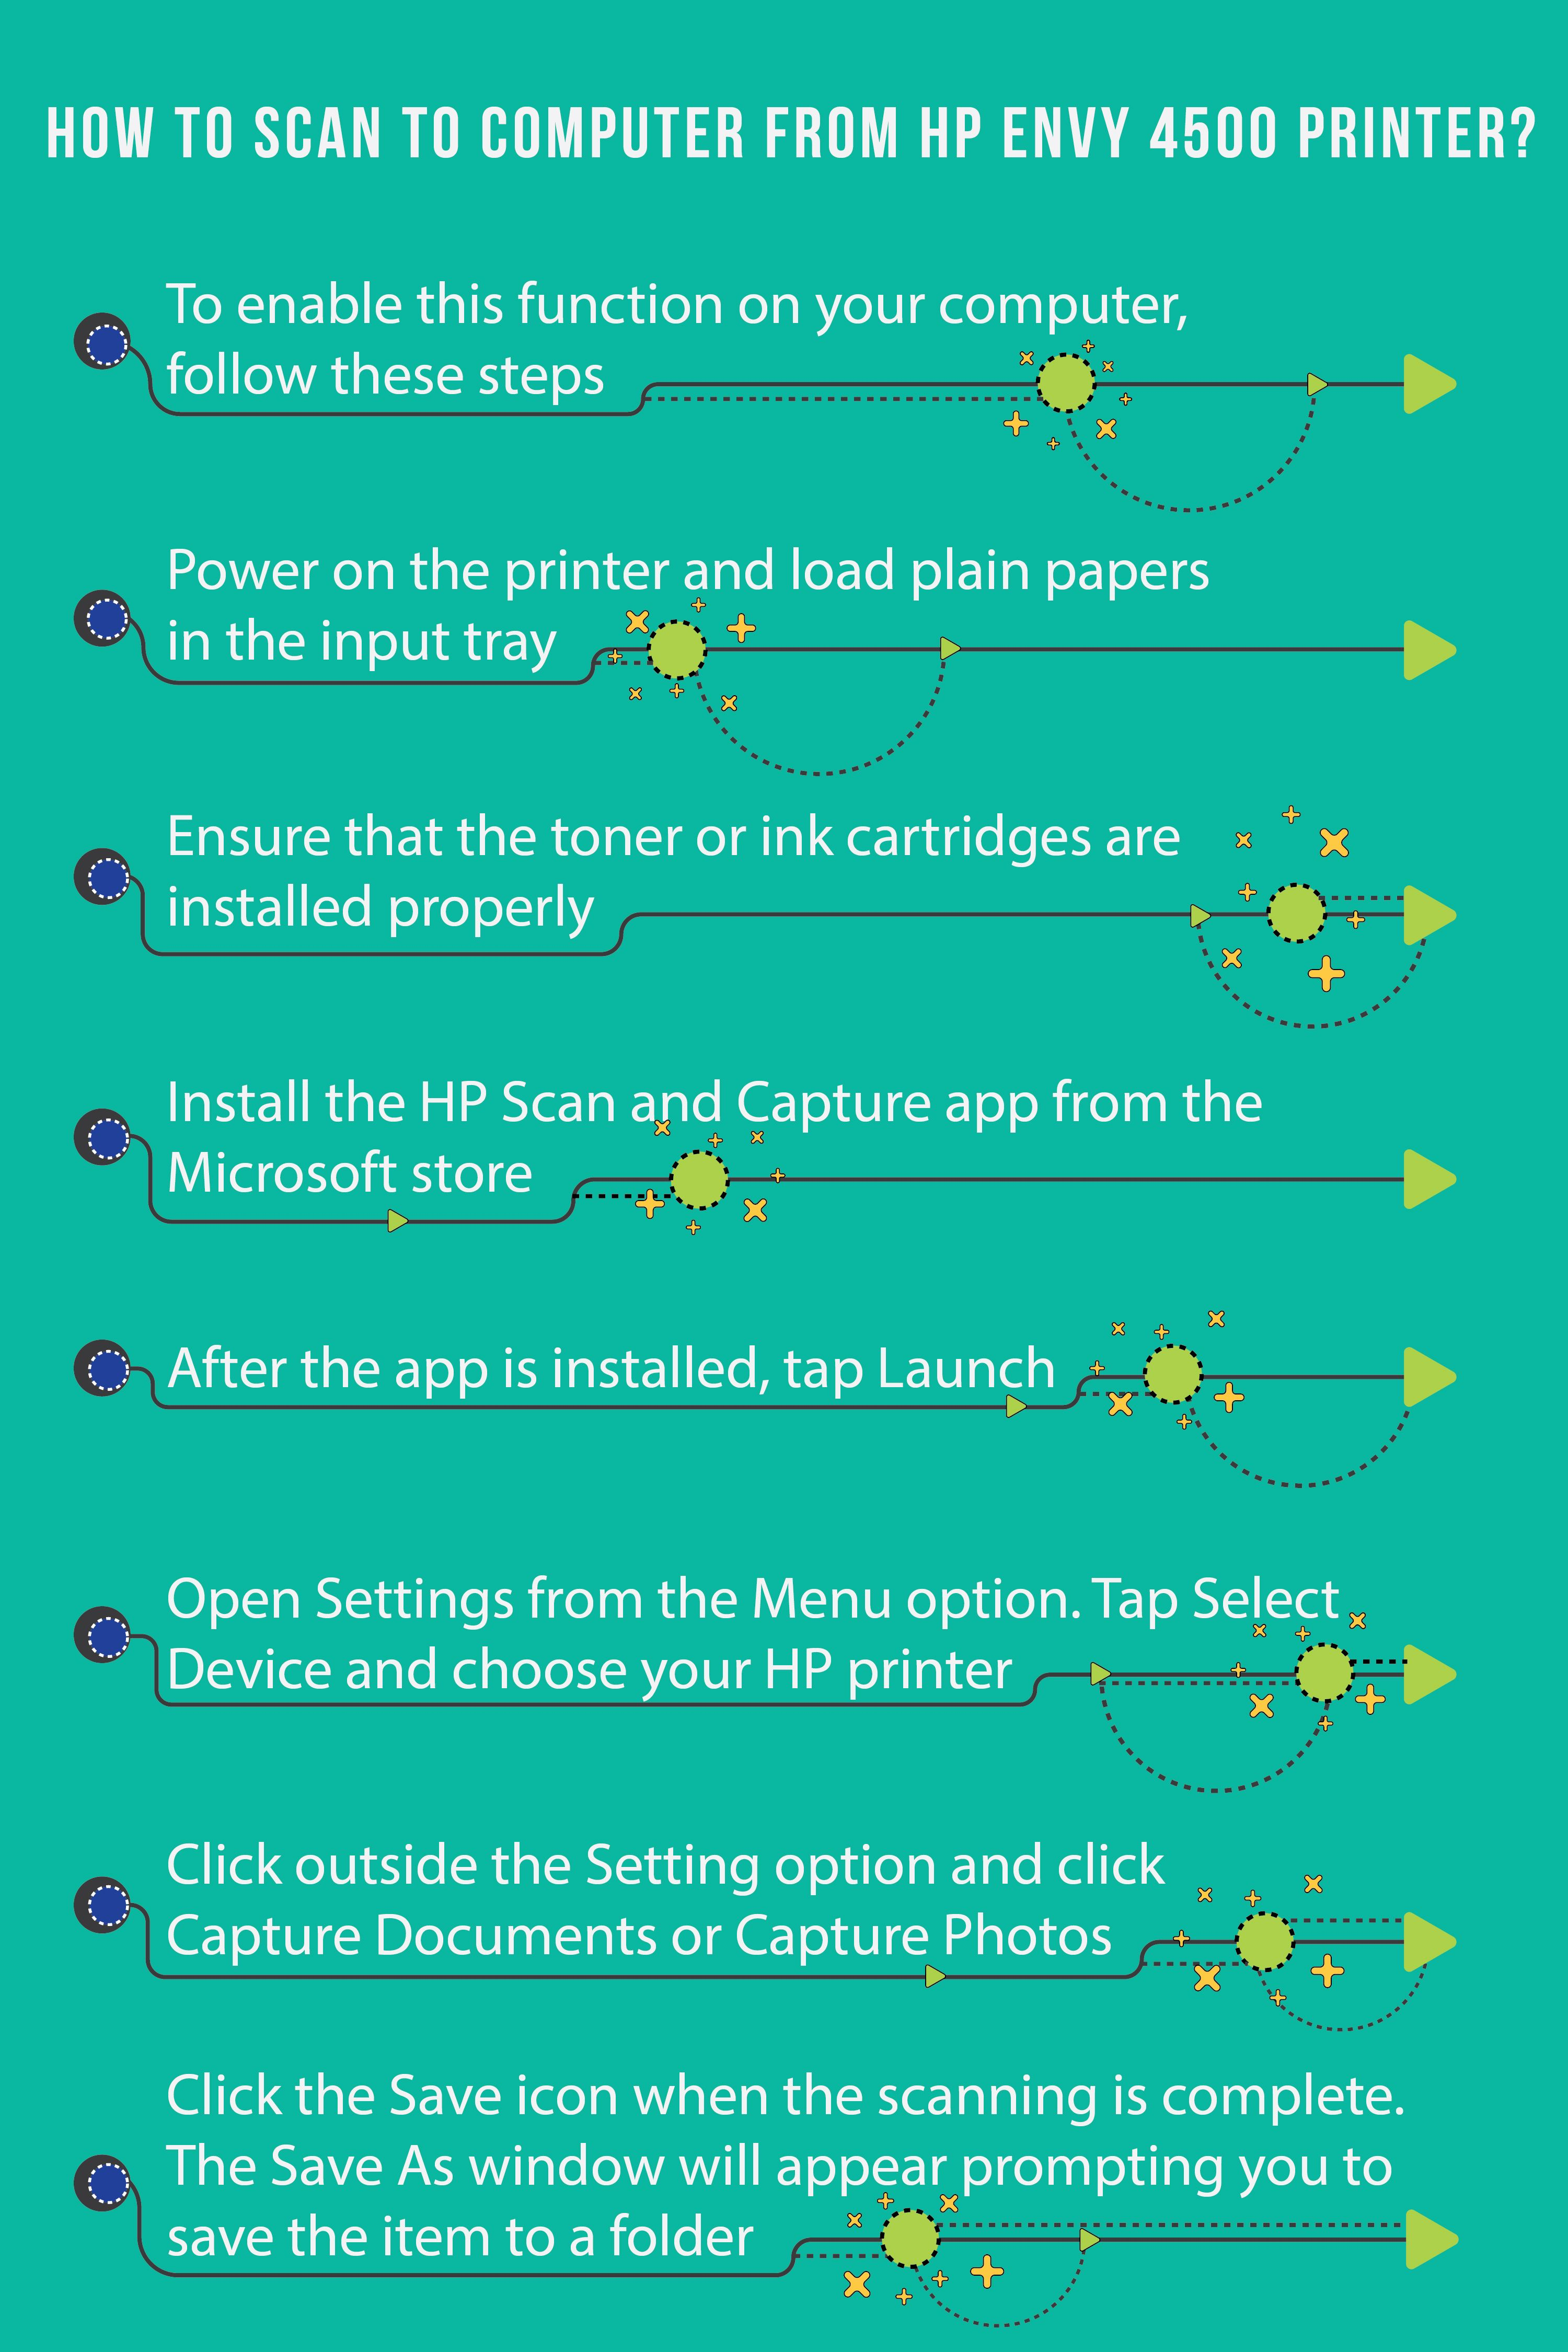 Pin by Printer Support on Printer Setup in 2019 | Printer